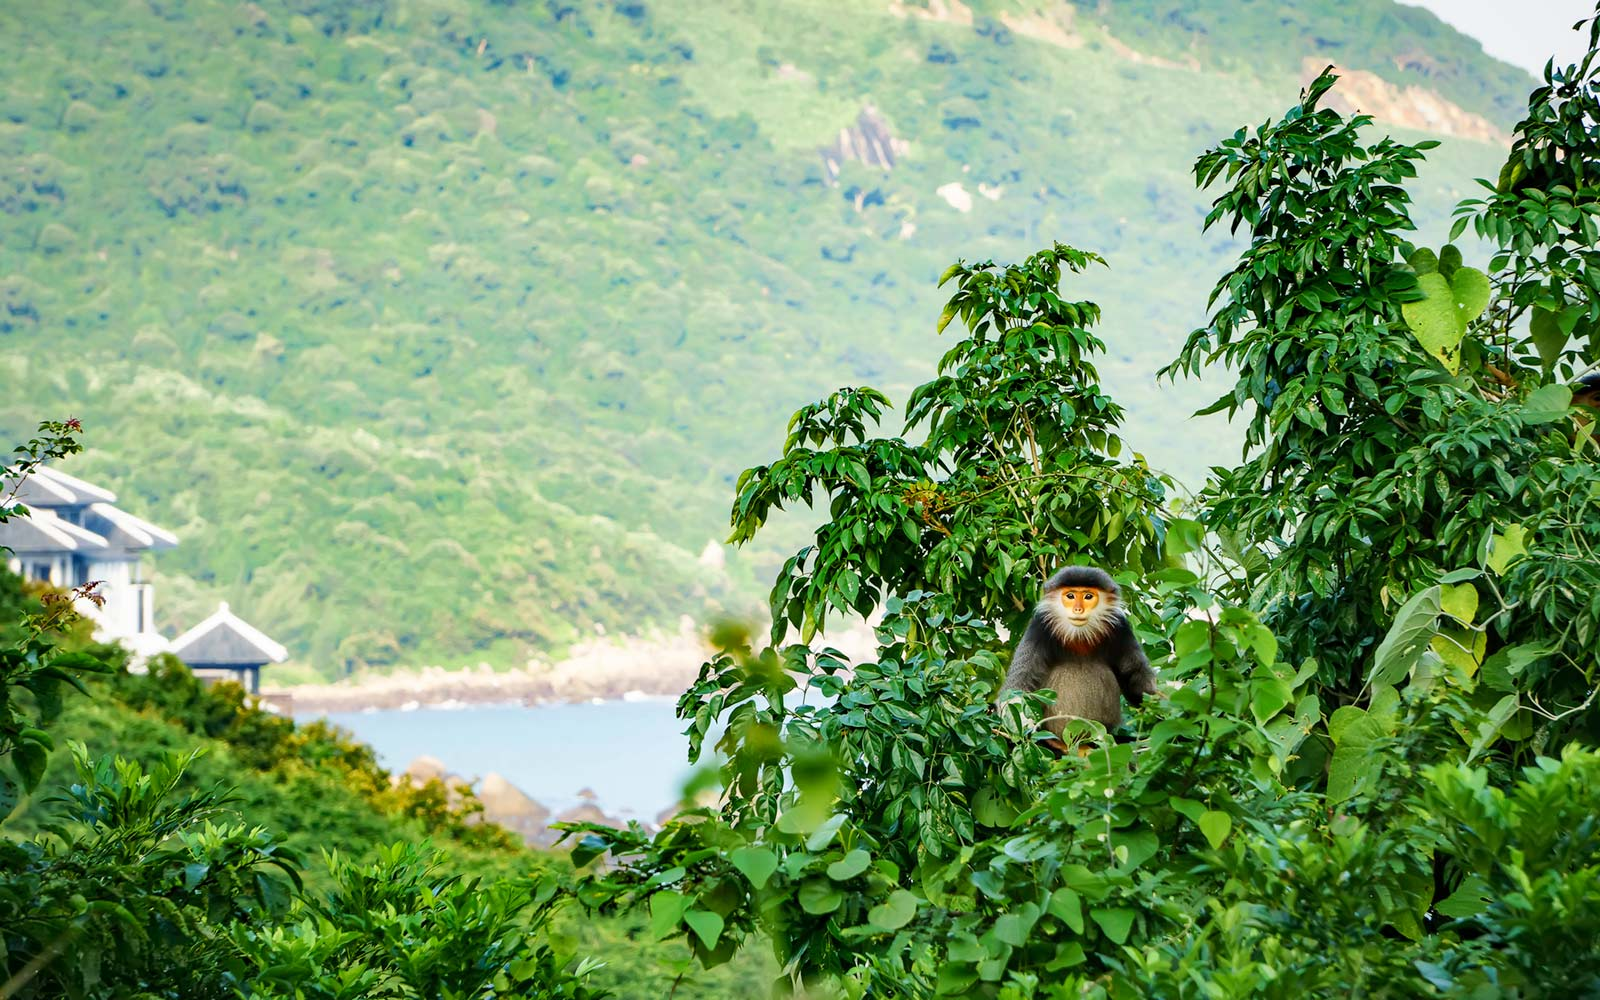 The Luxury Resort Where Millionaires Mingle With Monkeys